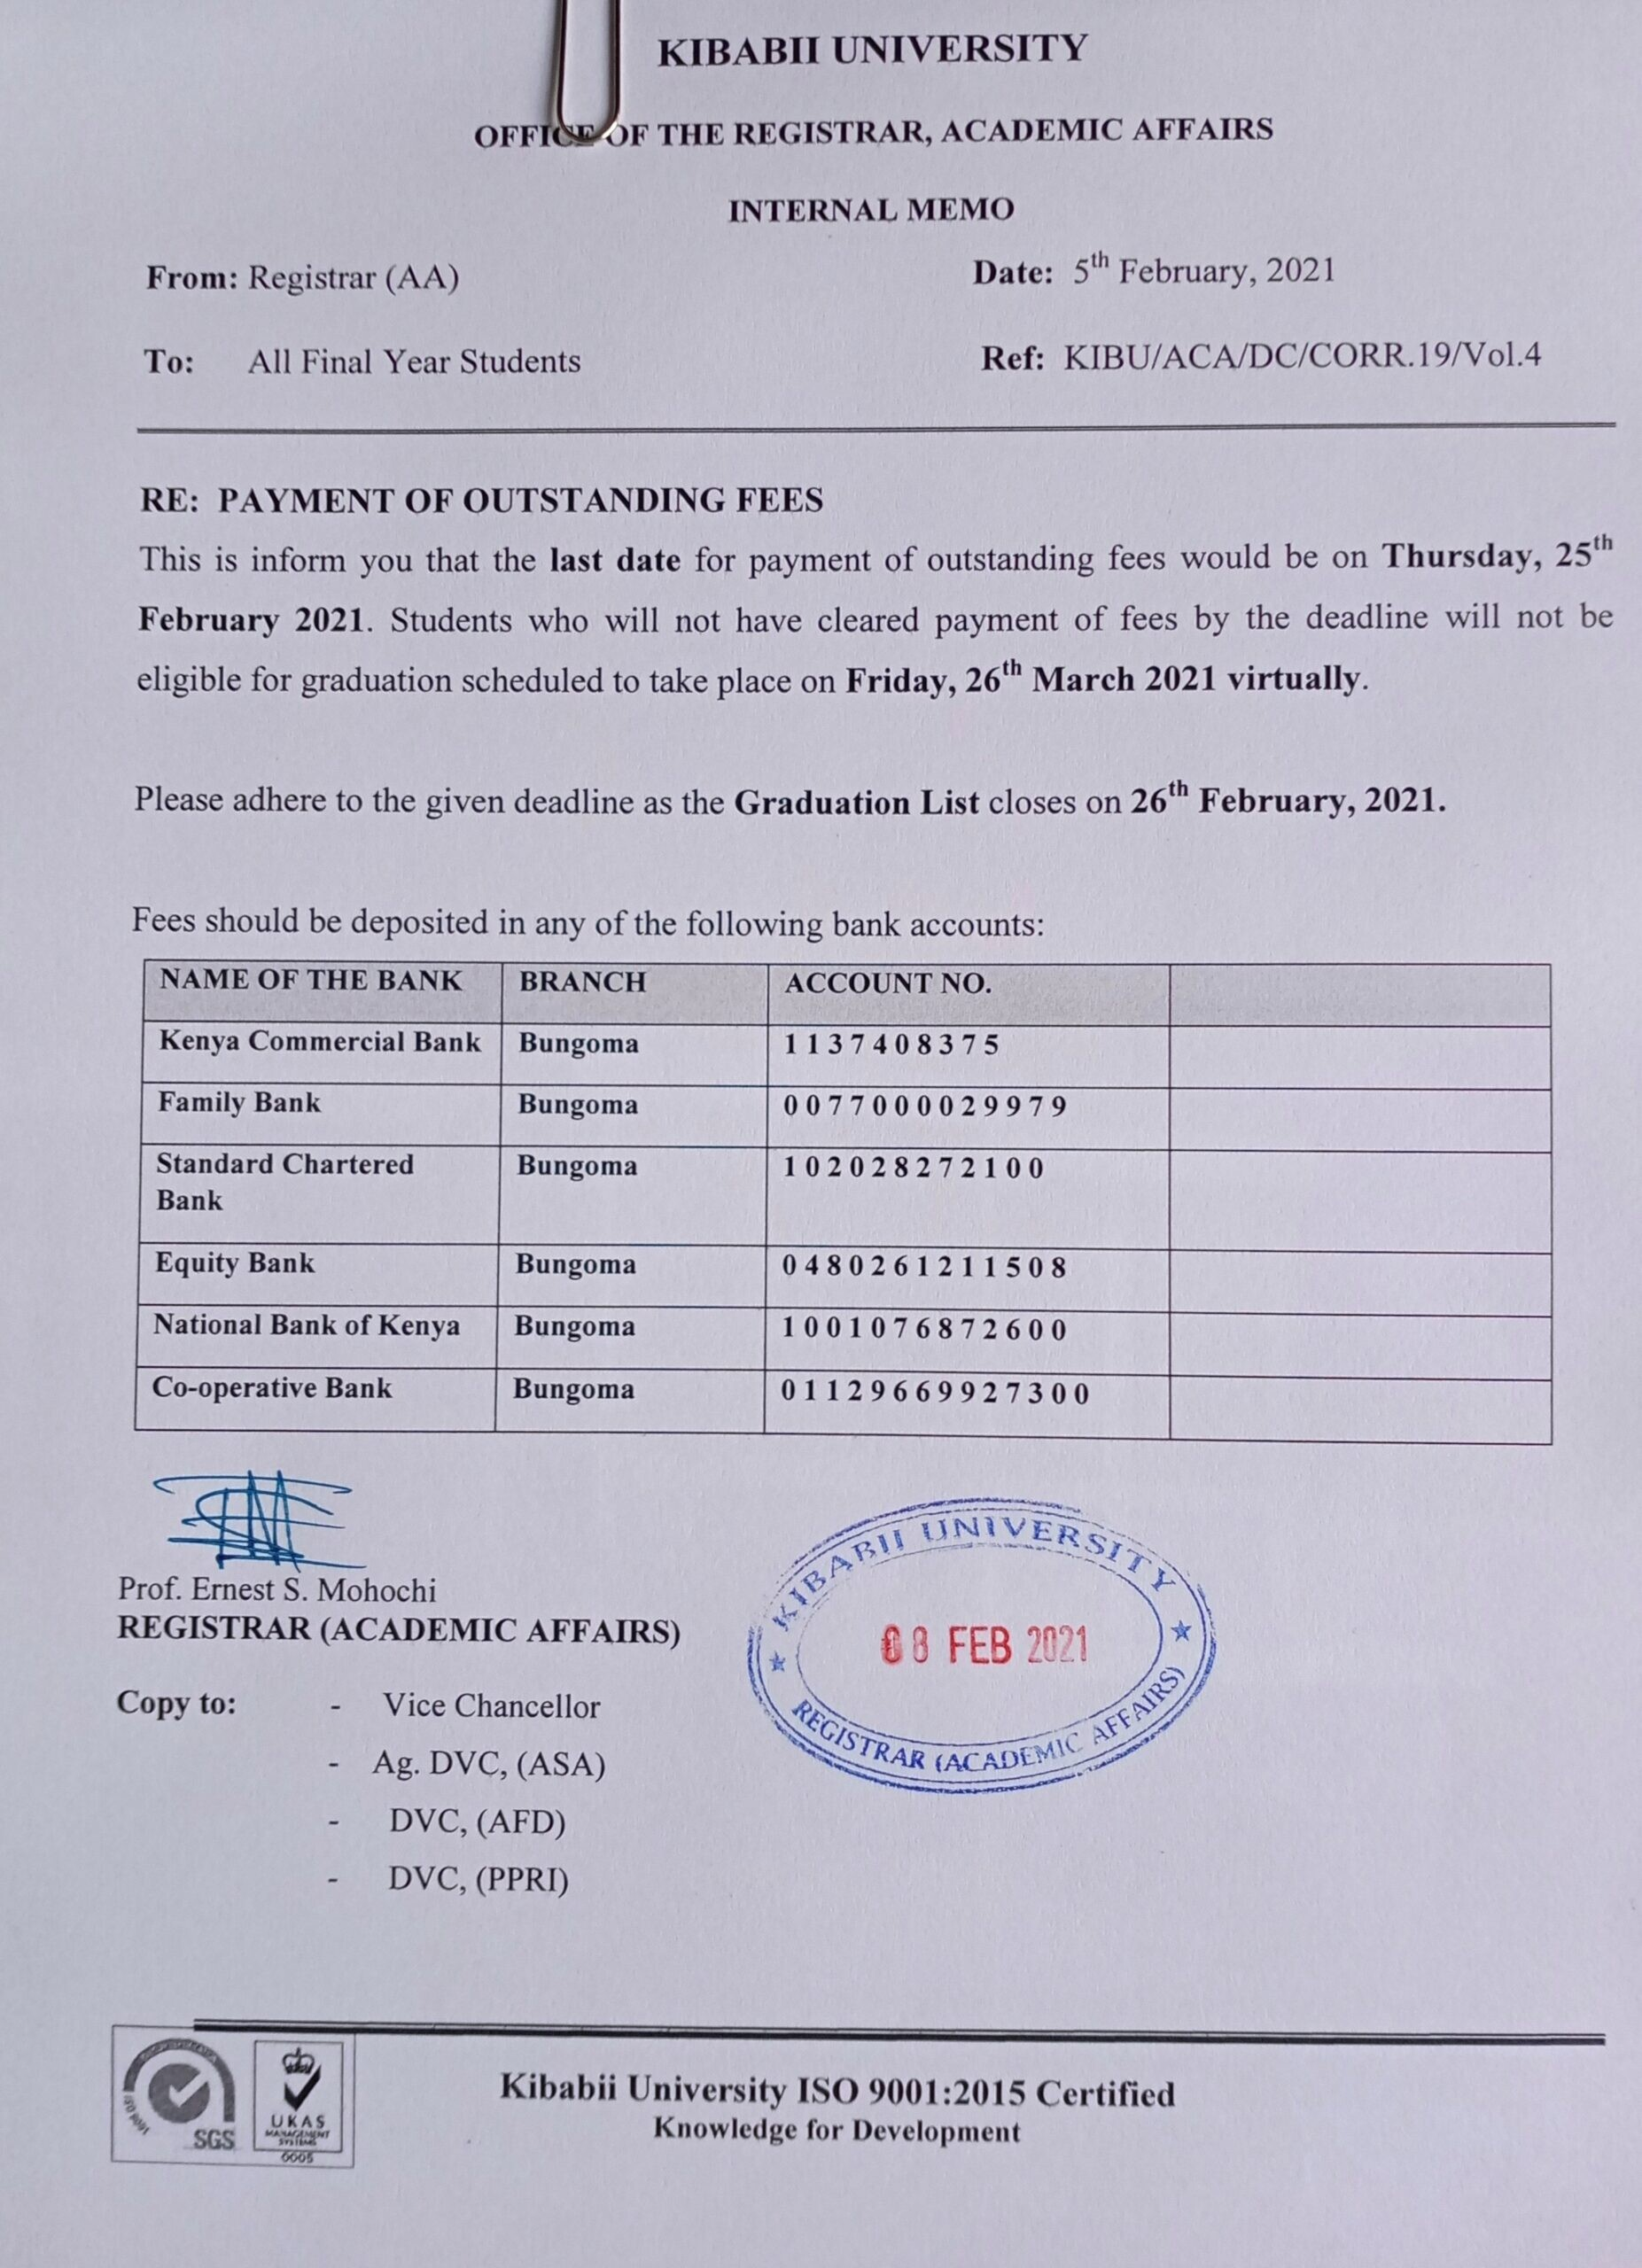 Payment of Outstanding Fees